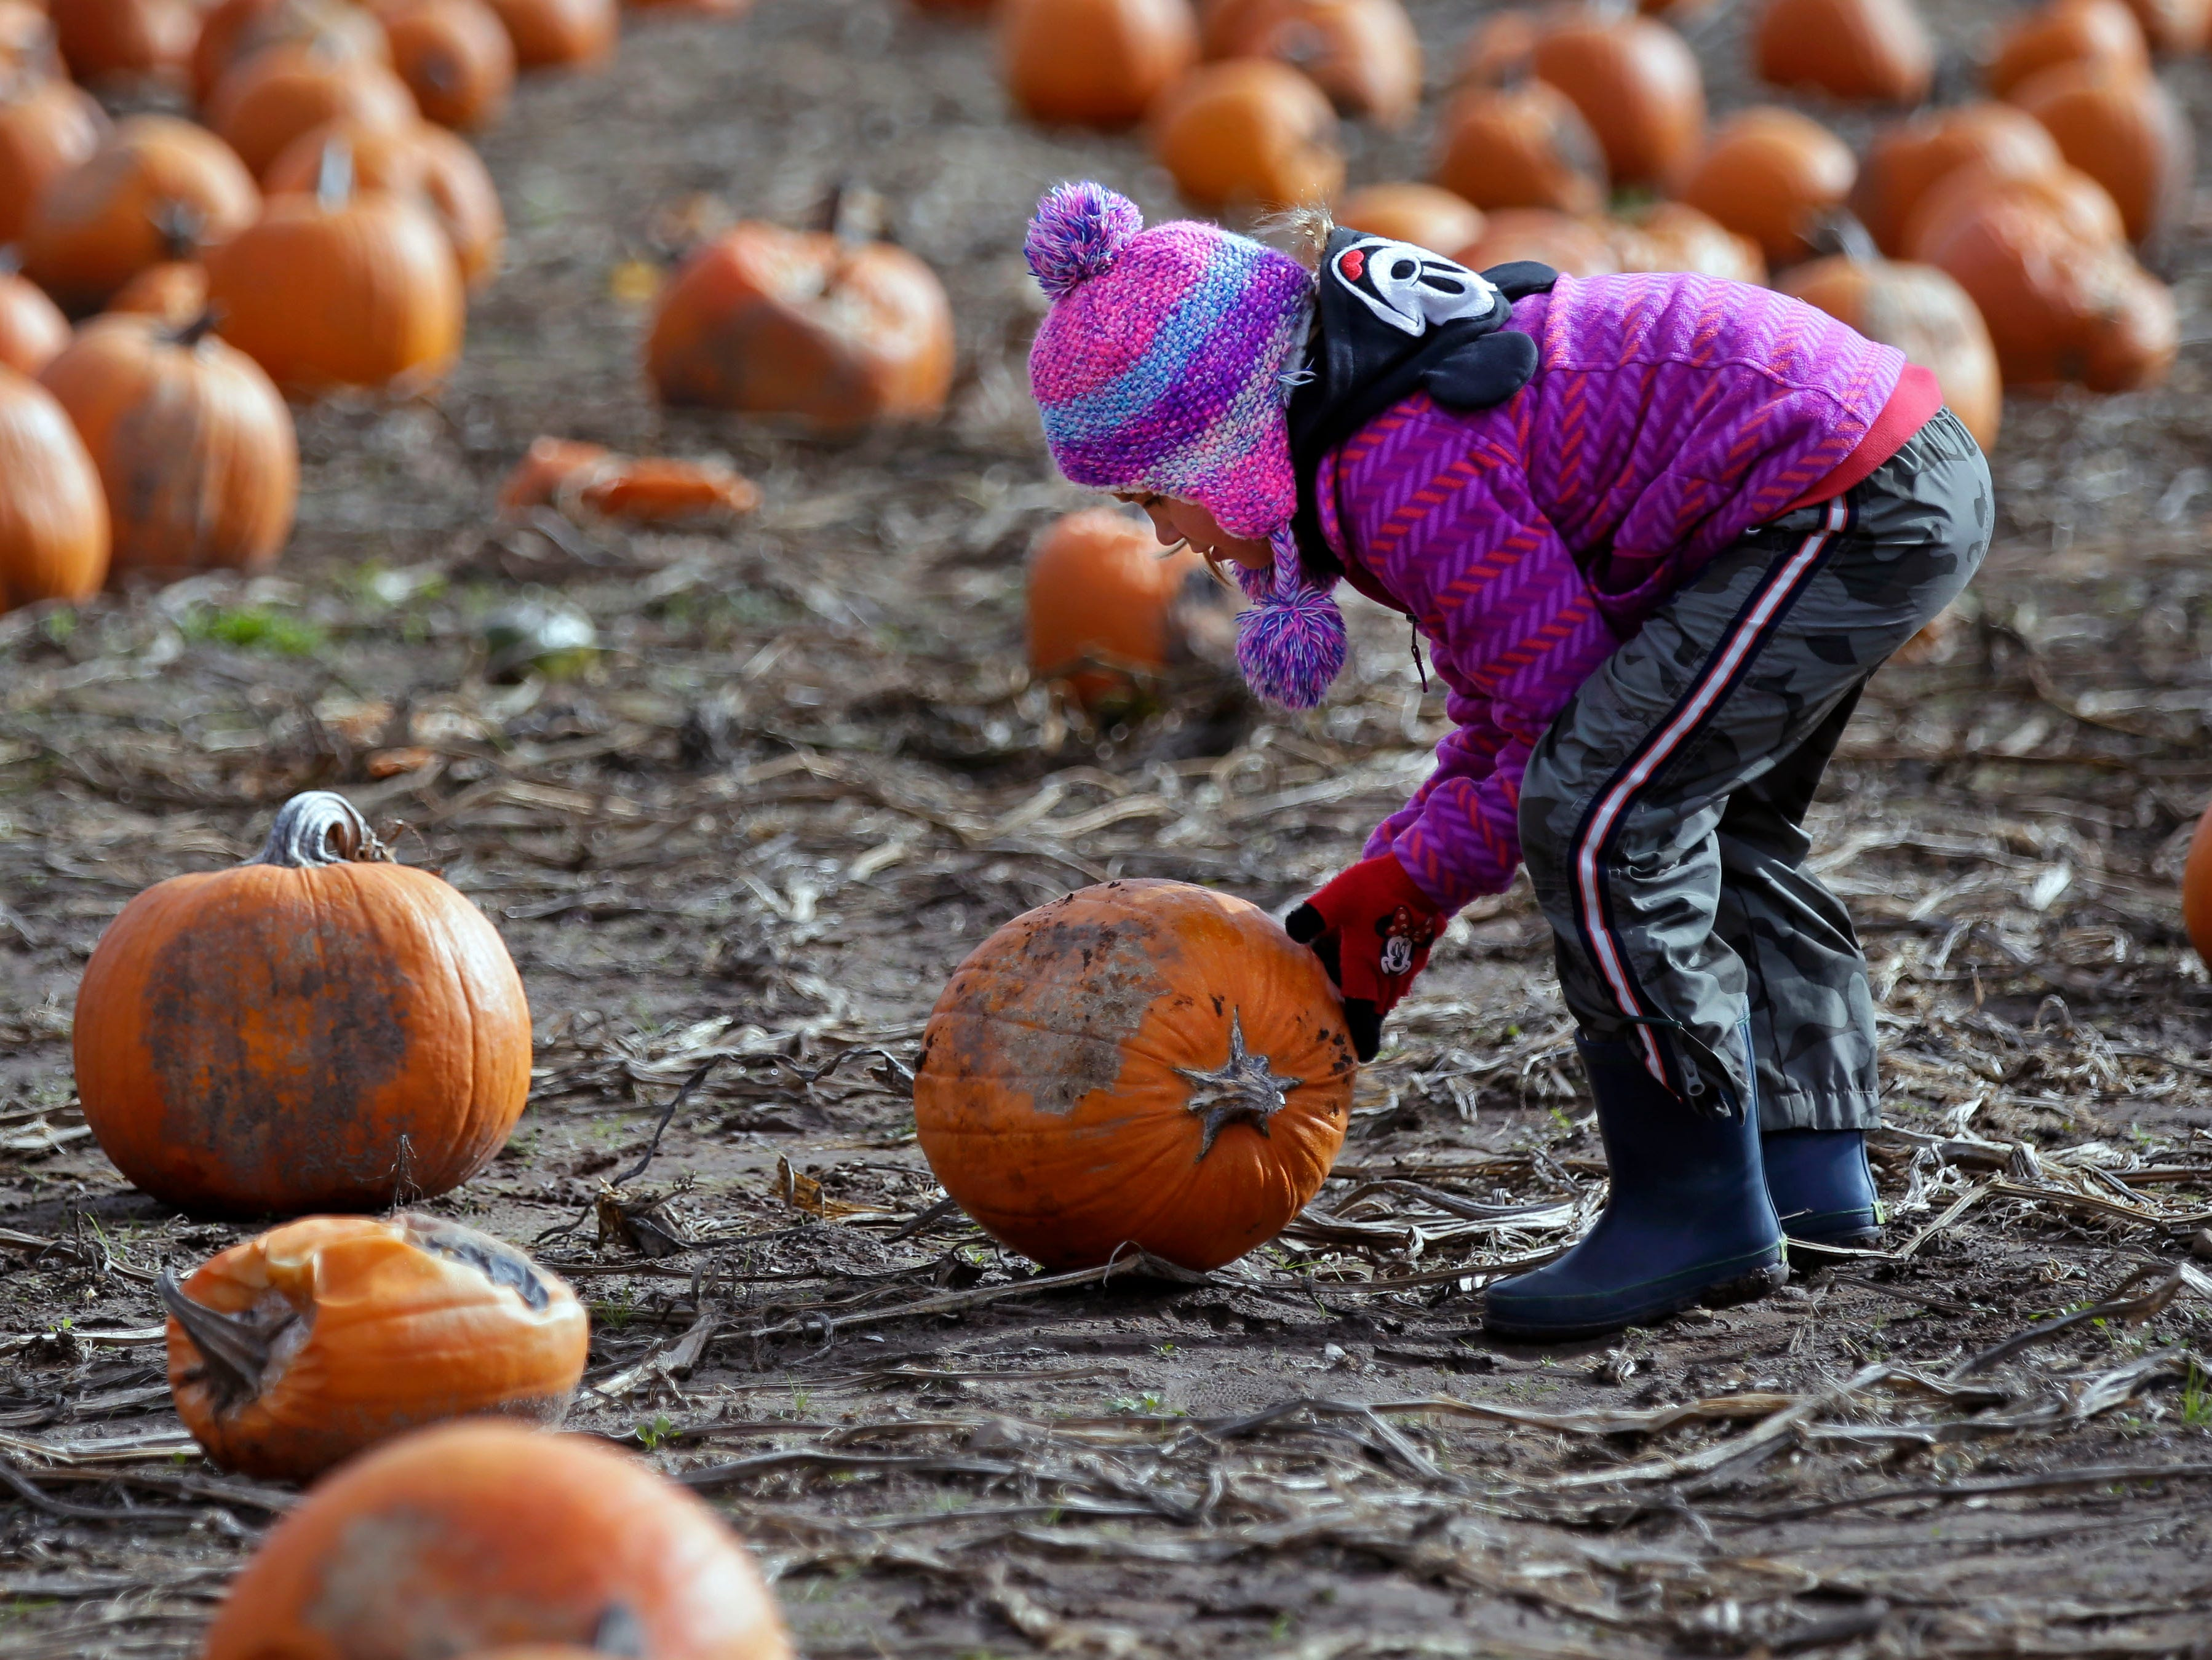 Mackenzie Kroncke of Neenah rolls her pumpkin through the patch Sunday, October 21, 2018, at Cuff Farms in Hortonville, Wis.